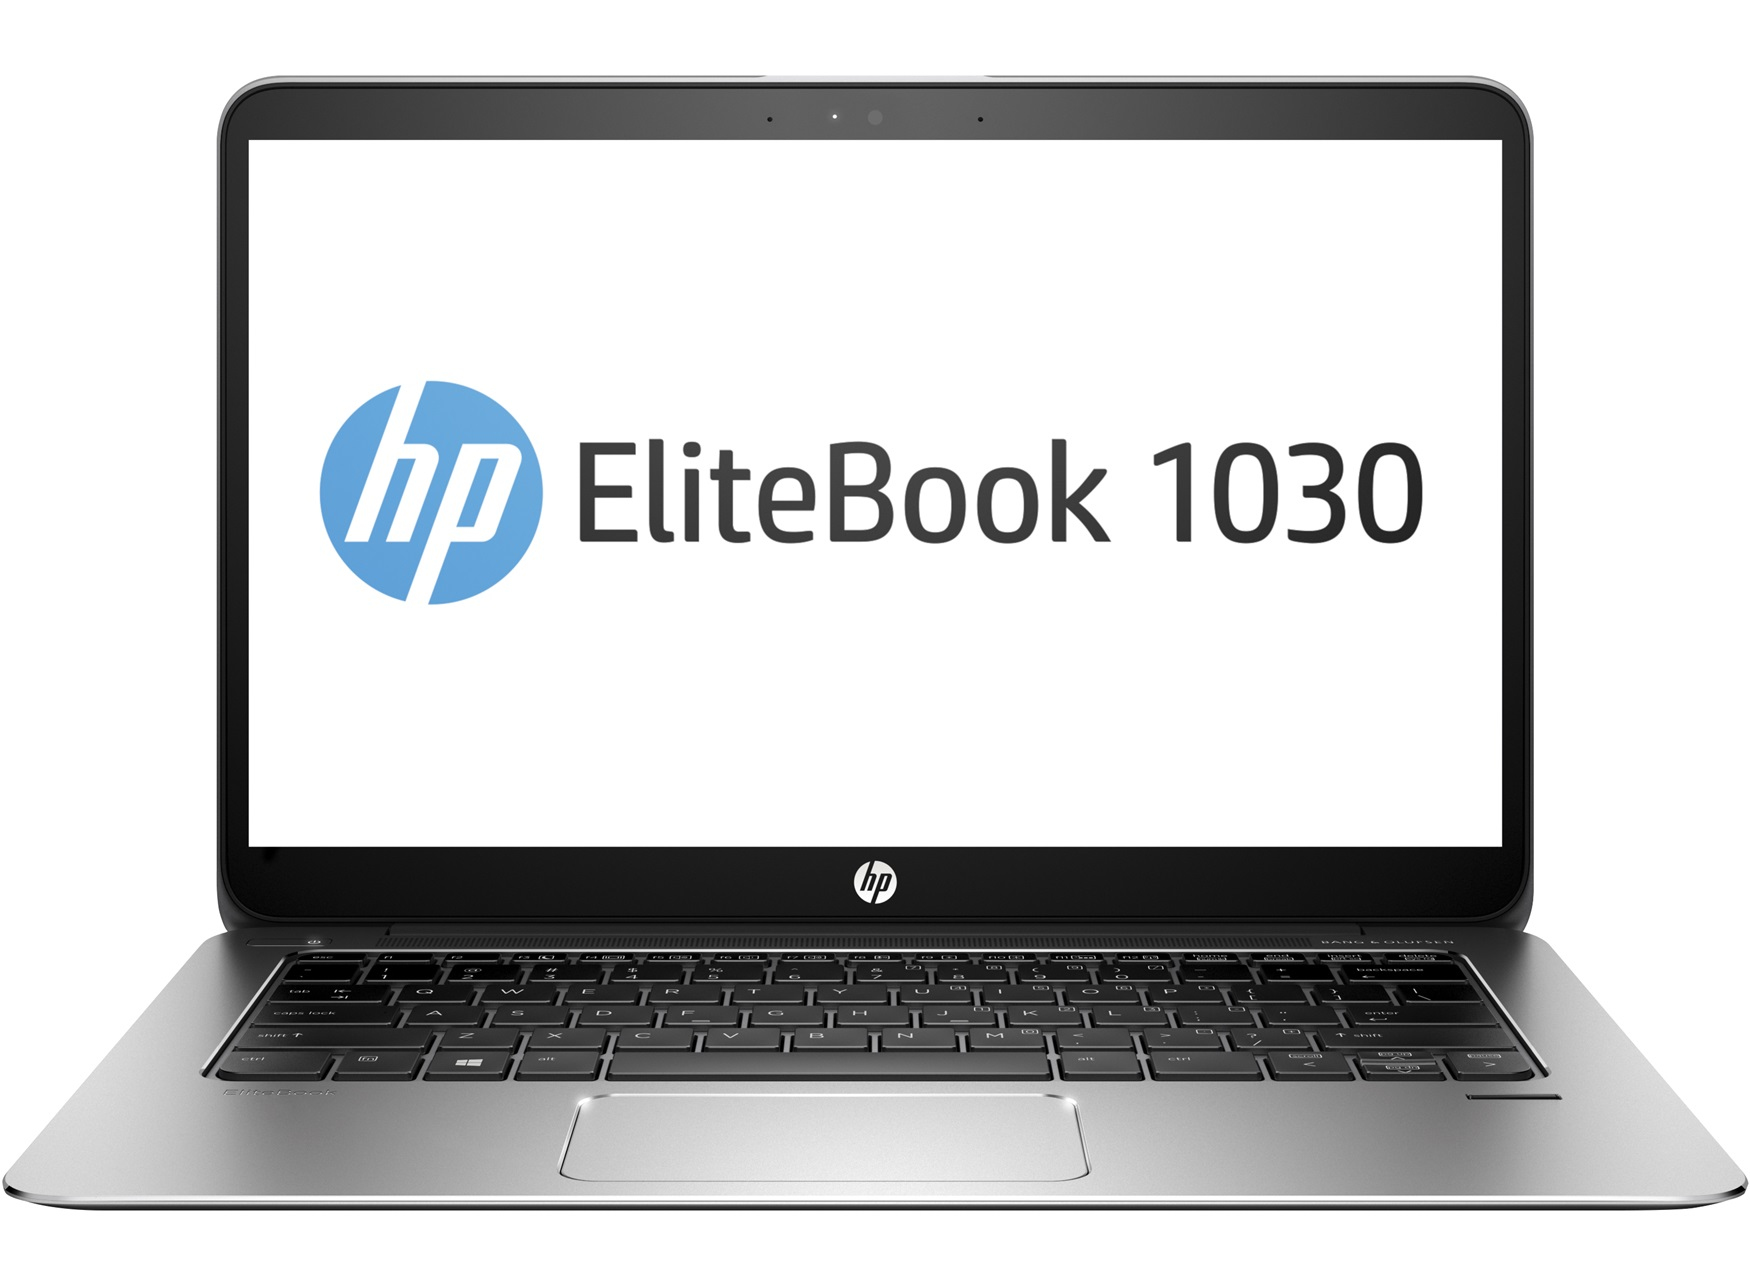 "HP EliteBook 1030 G1 1.2GHz m7-6Y75 13.3"" 3200 x 1800pixels Touchscreen Silver Notebook"